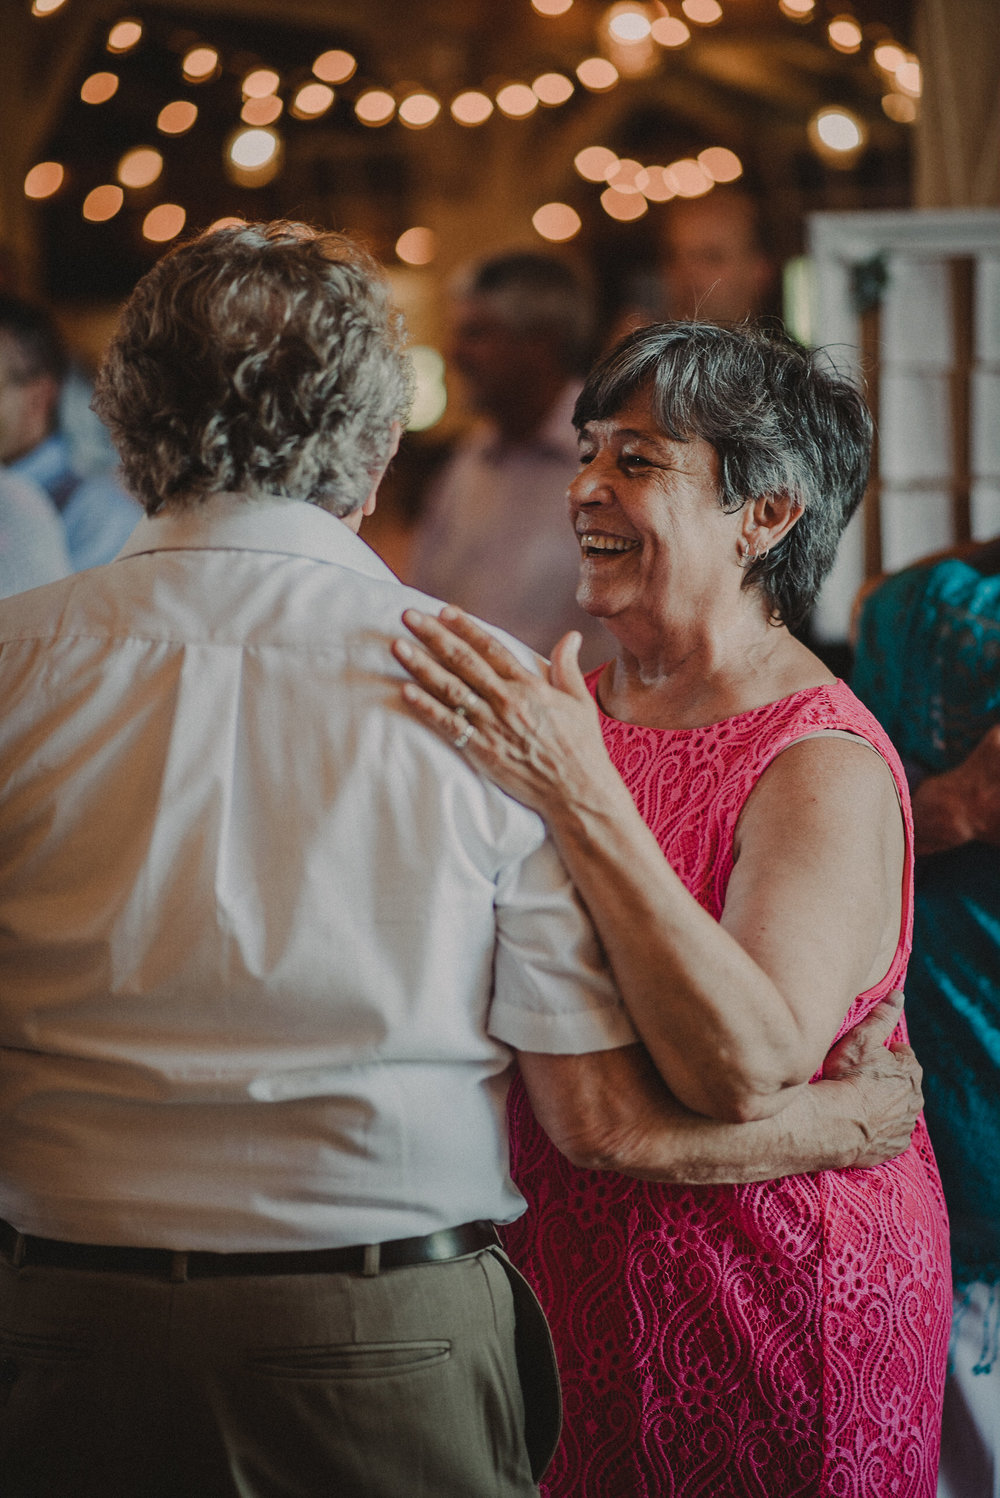 Guests dancing at weding reception